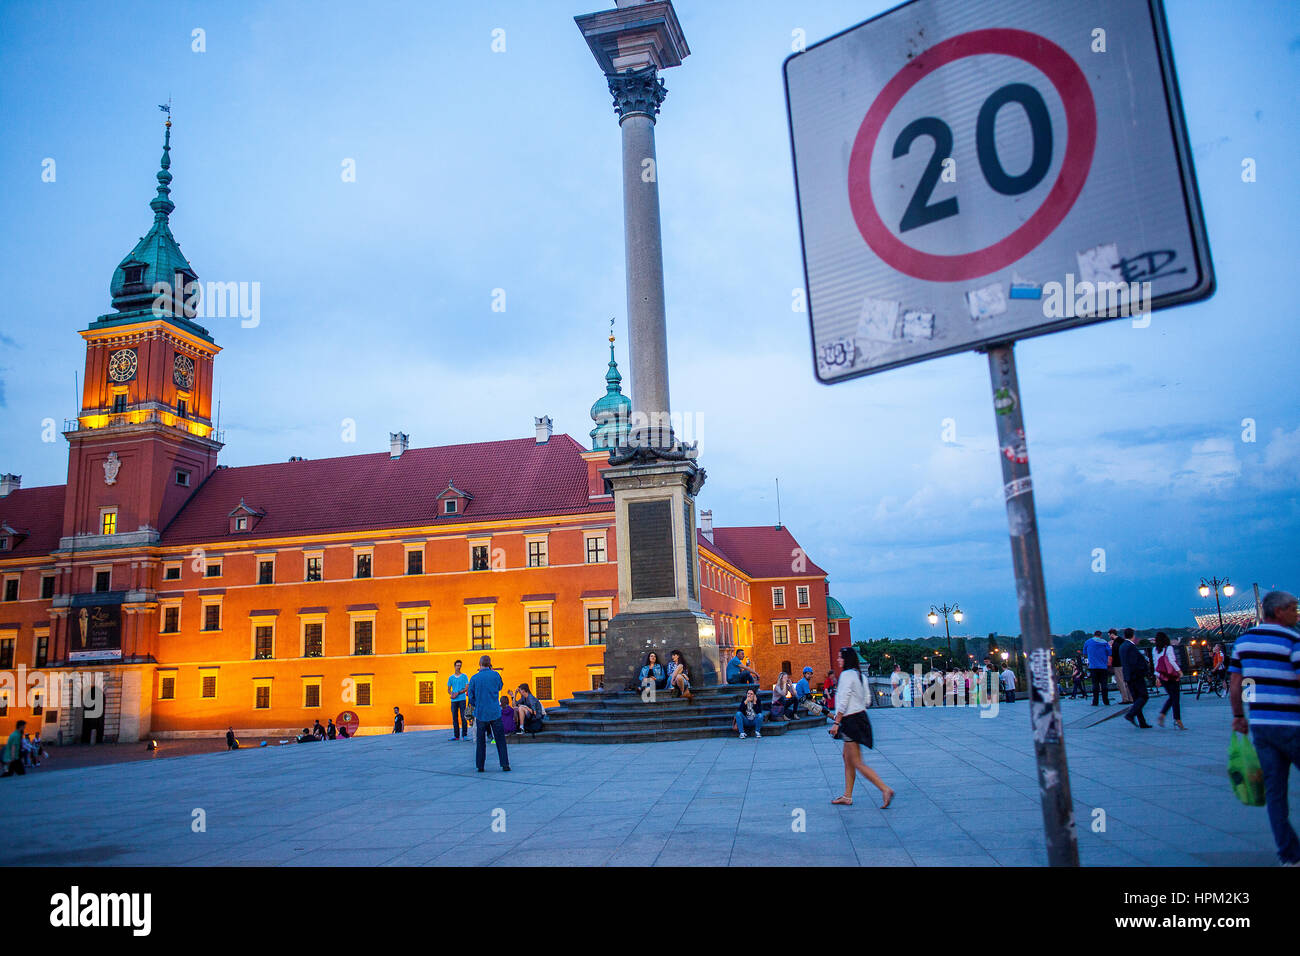 Plac Zamkowy square, The Royal Castle and Zygmunt column, Warsaw, Poland - Stock Image